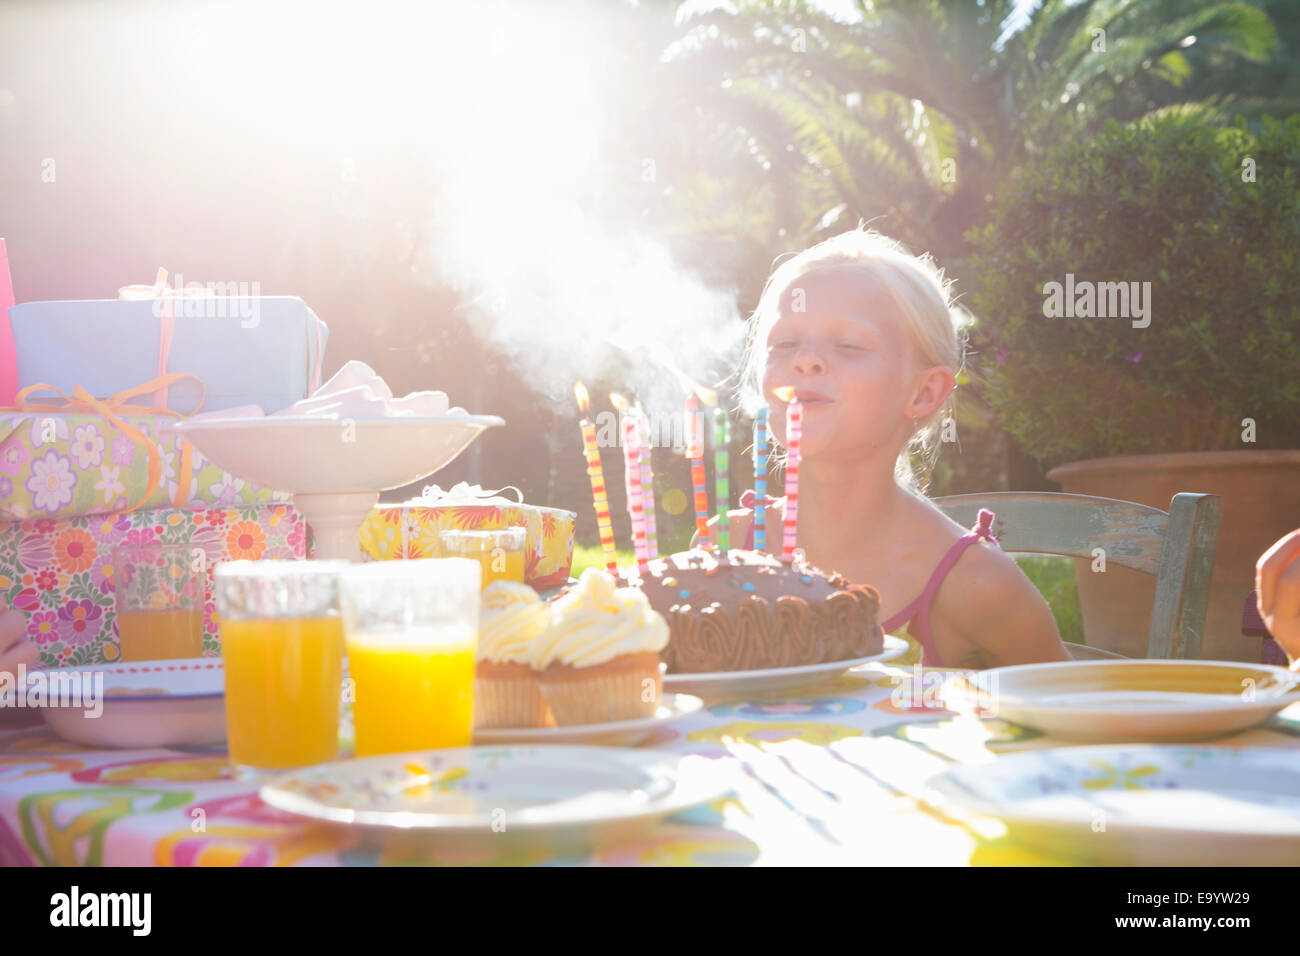 Girls blowing out candles on cake Photo Stock